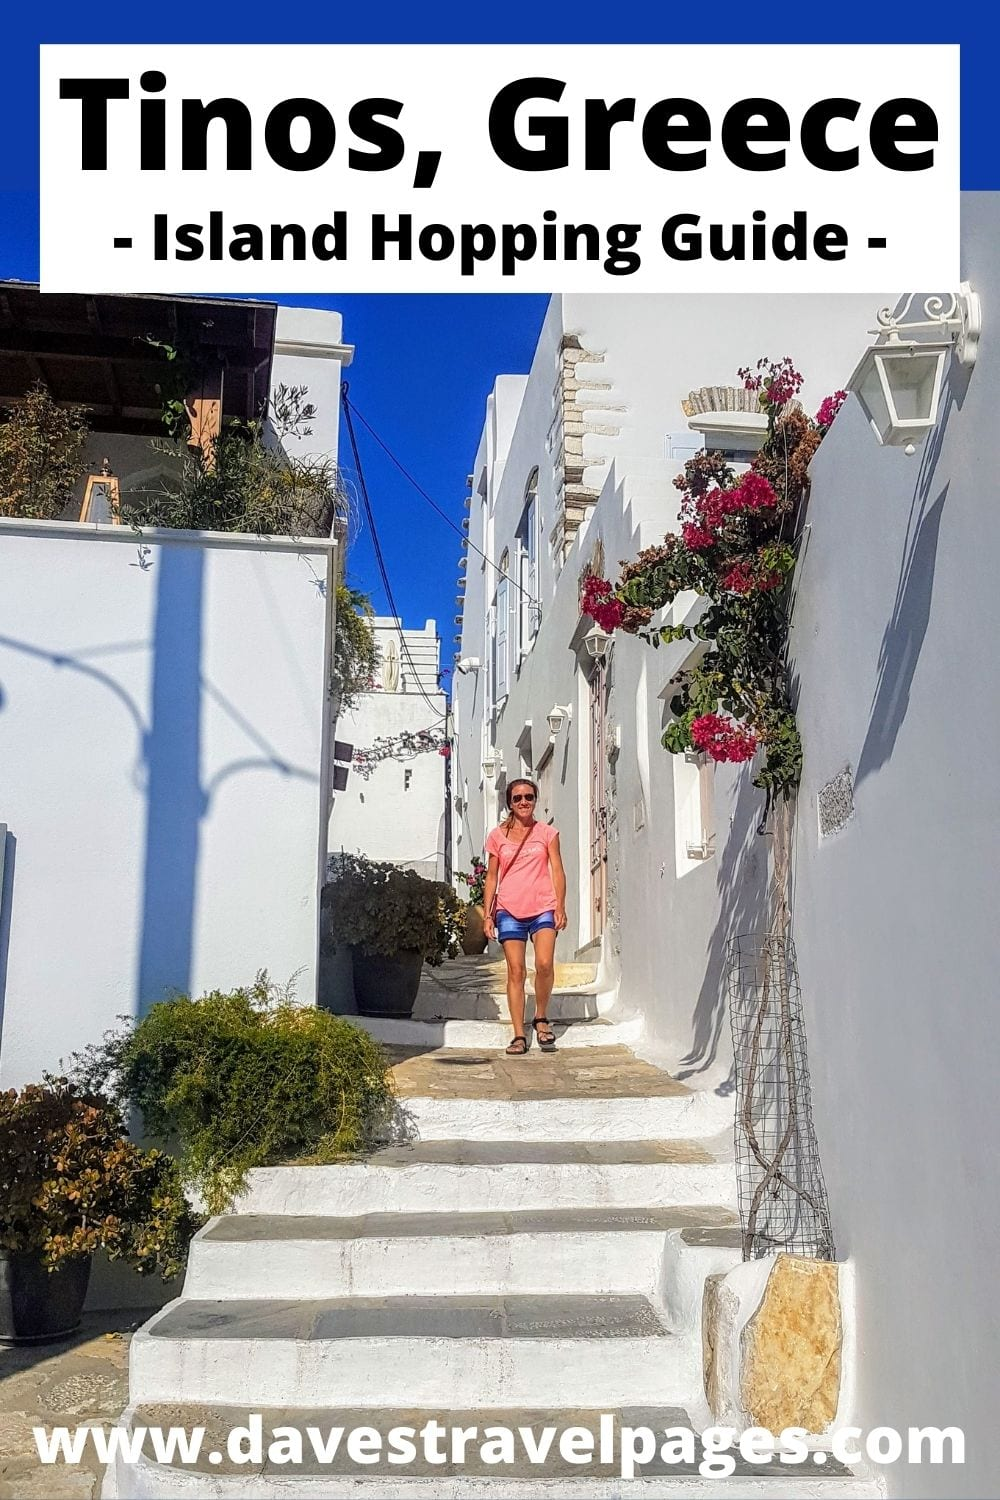 How to get from Naxos to Tinos in Greece